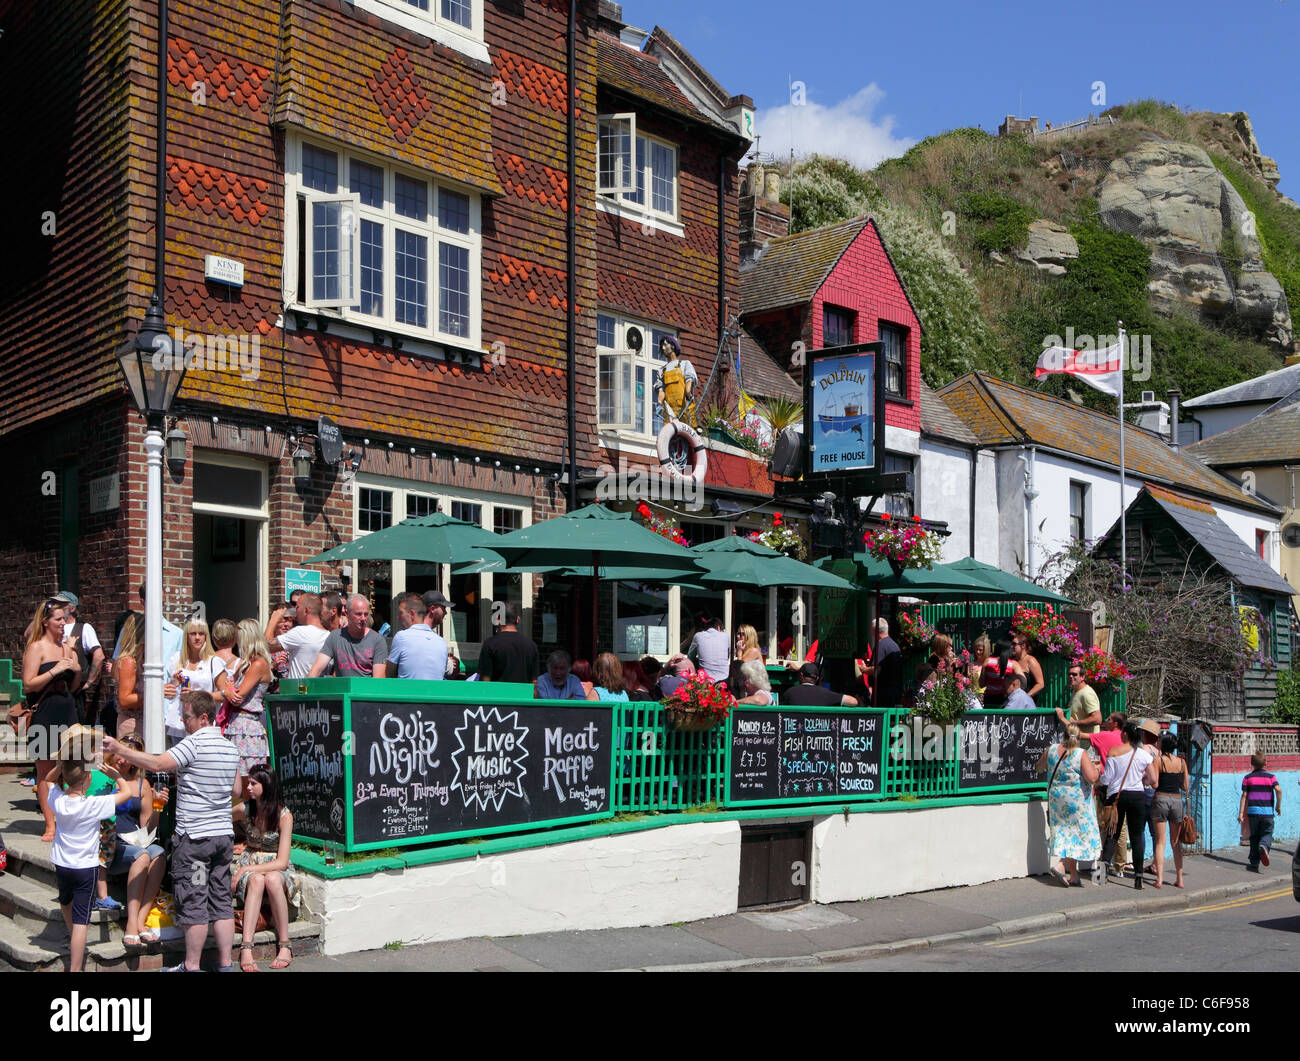 The Dolphin Pub, Hastings Old Town, East Sussex, England, UK, GB - Stock Image